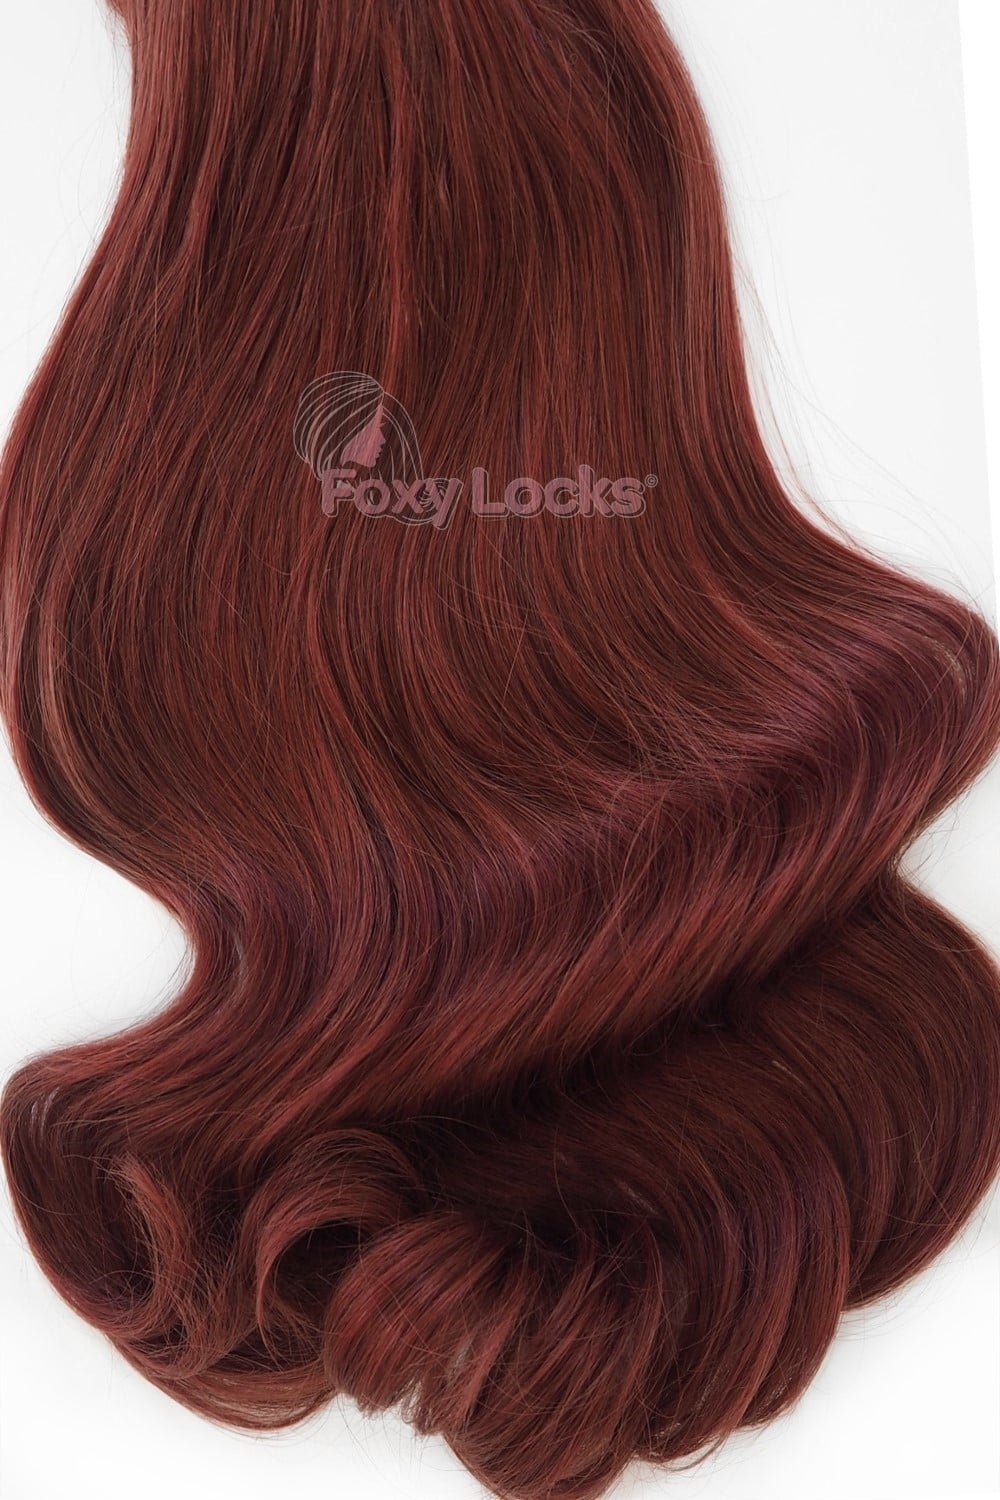 Mahogany Red #33 - Deluxe 20\' Clip In Human